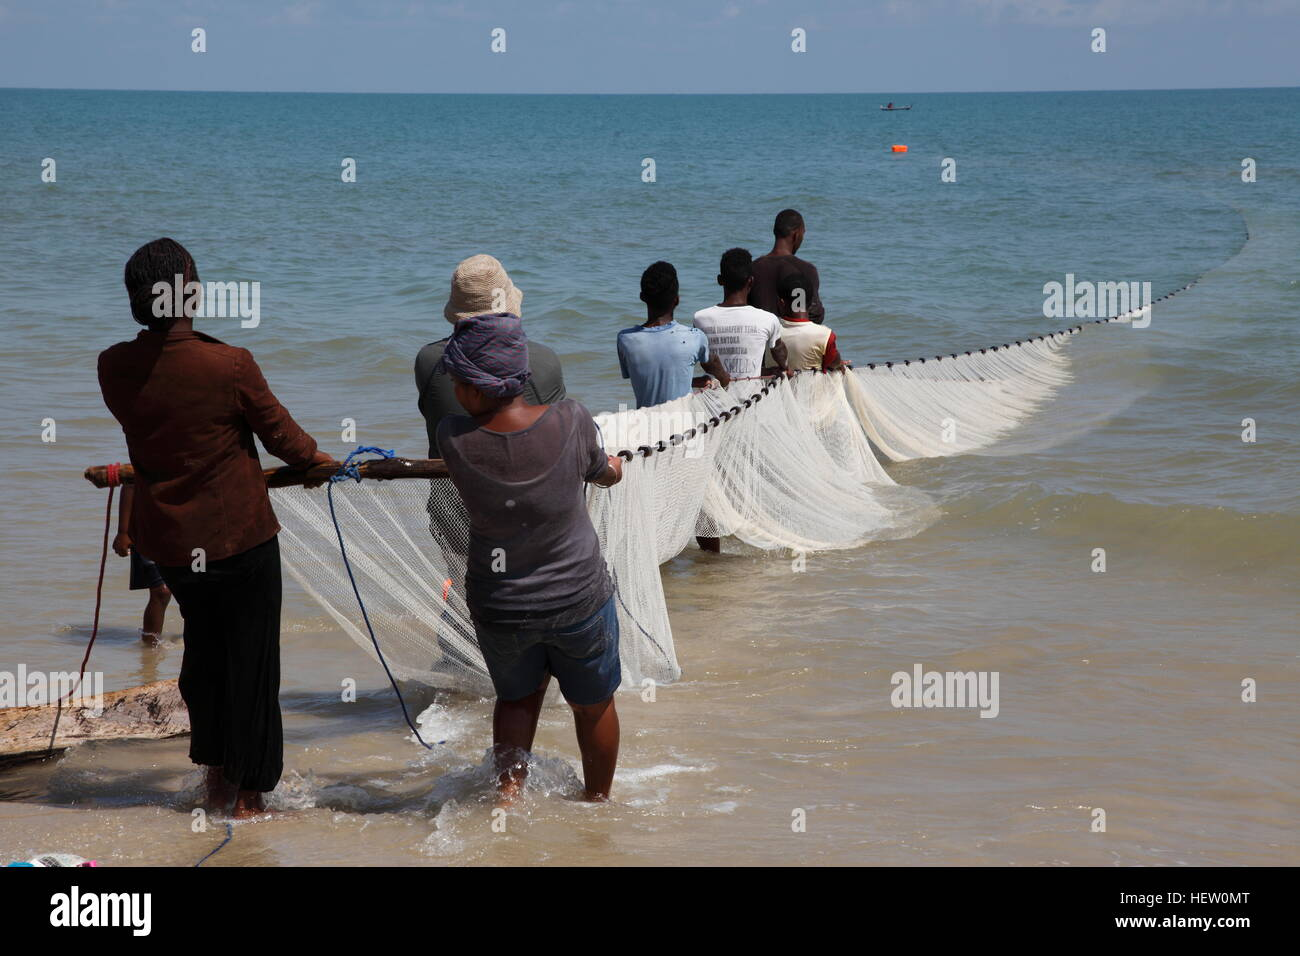 Hauling in the fishing net on the beach at Morondava - Stock Image